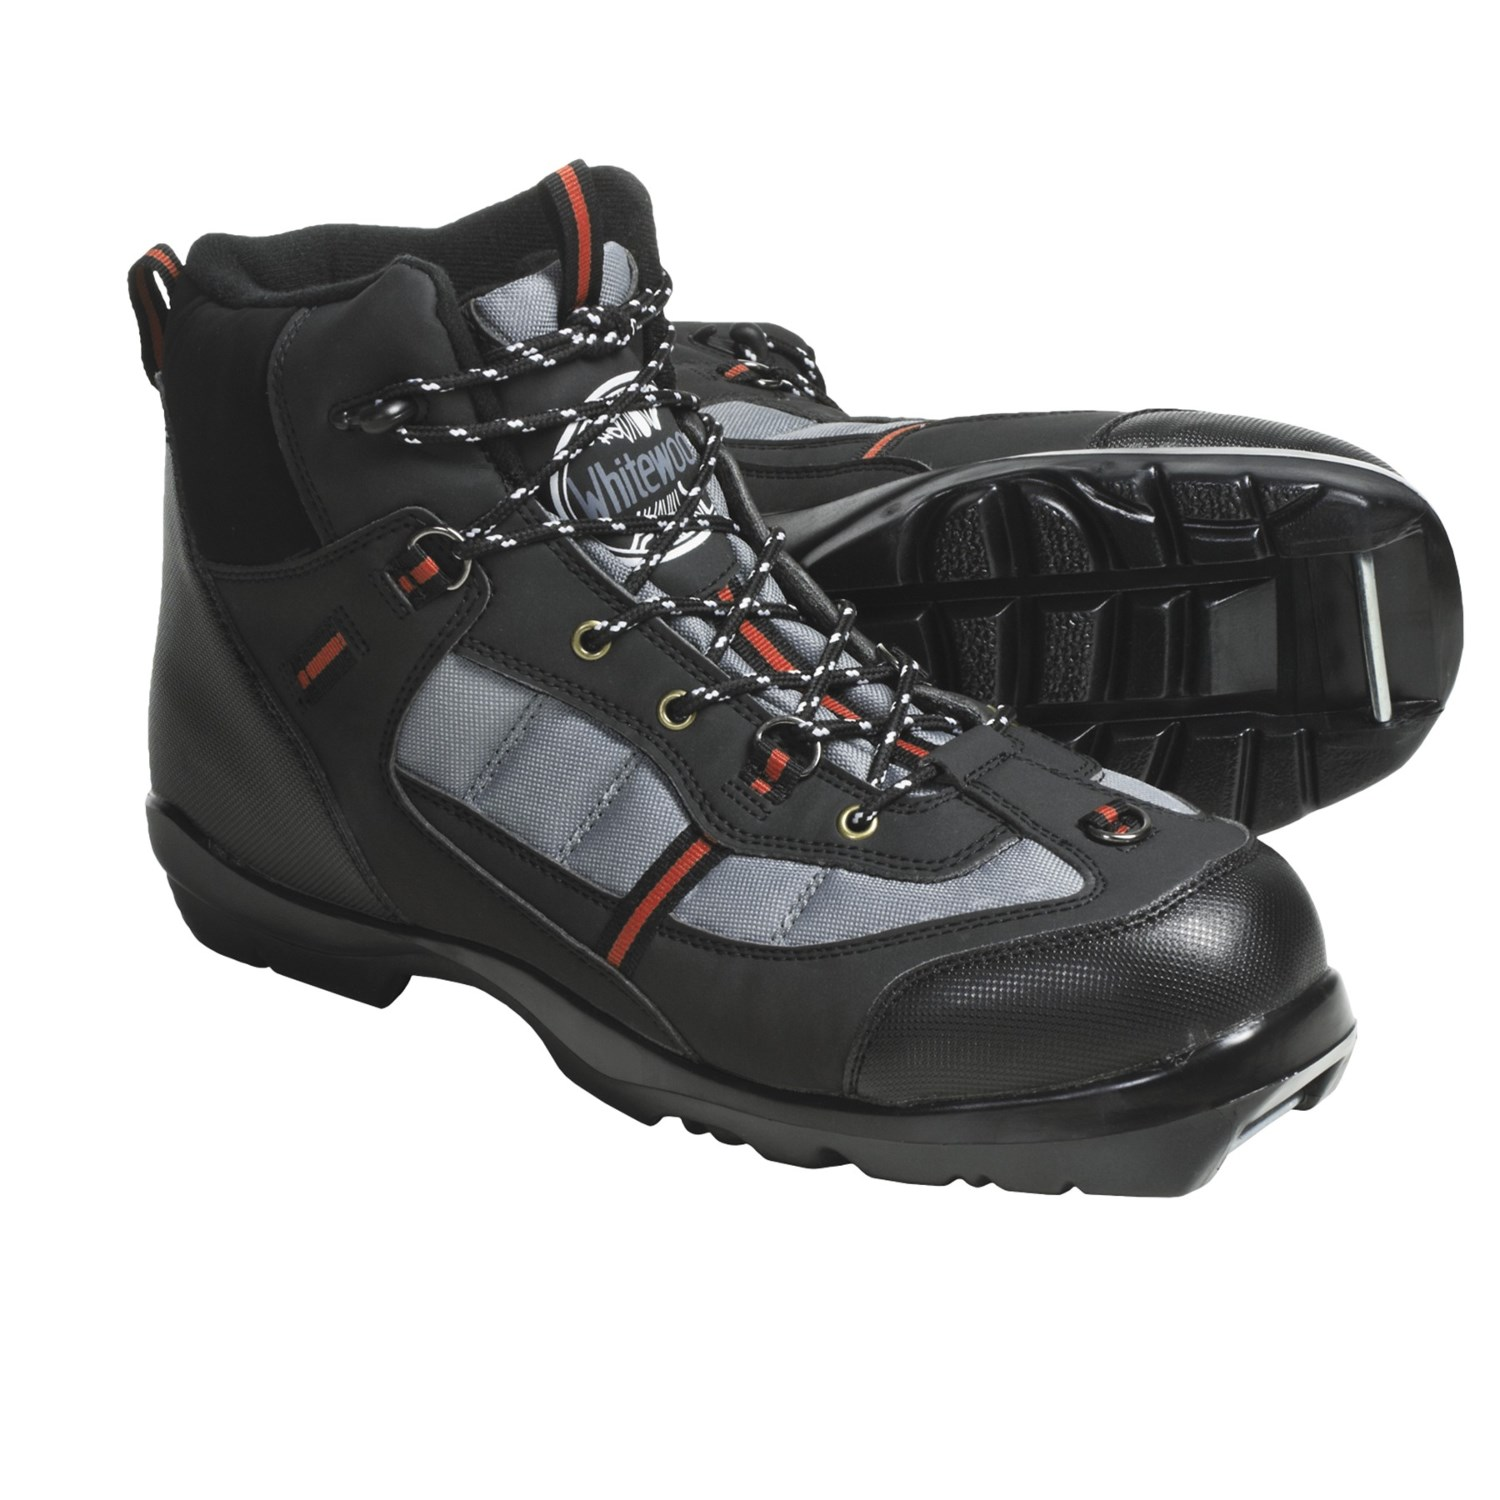 Women's Wide Cross Country Ski Boots 100